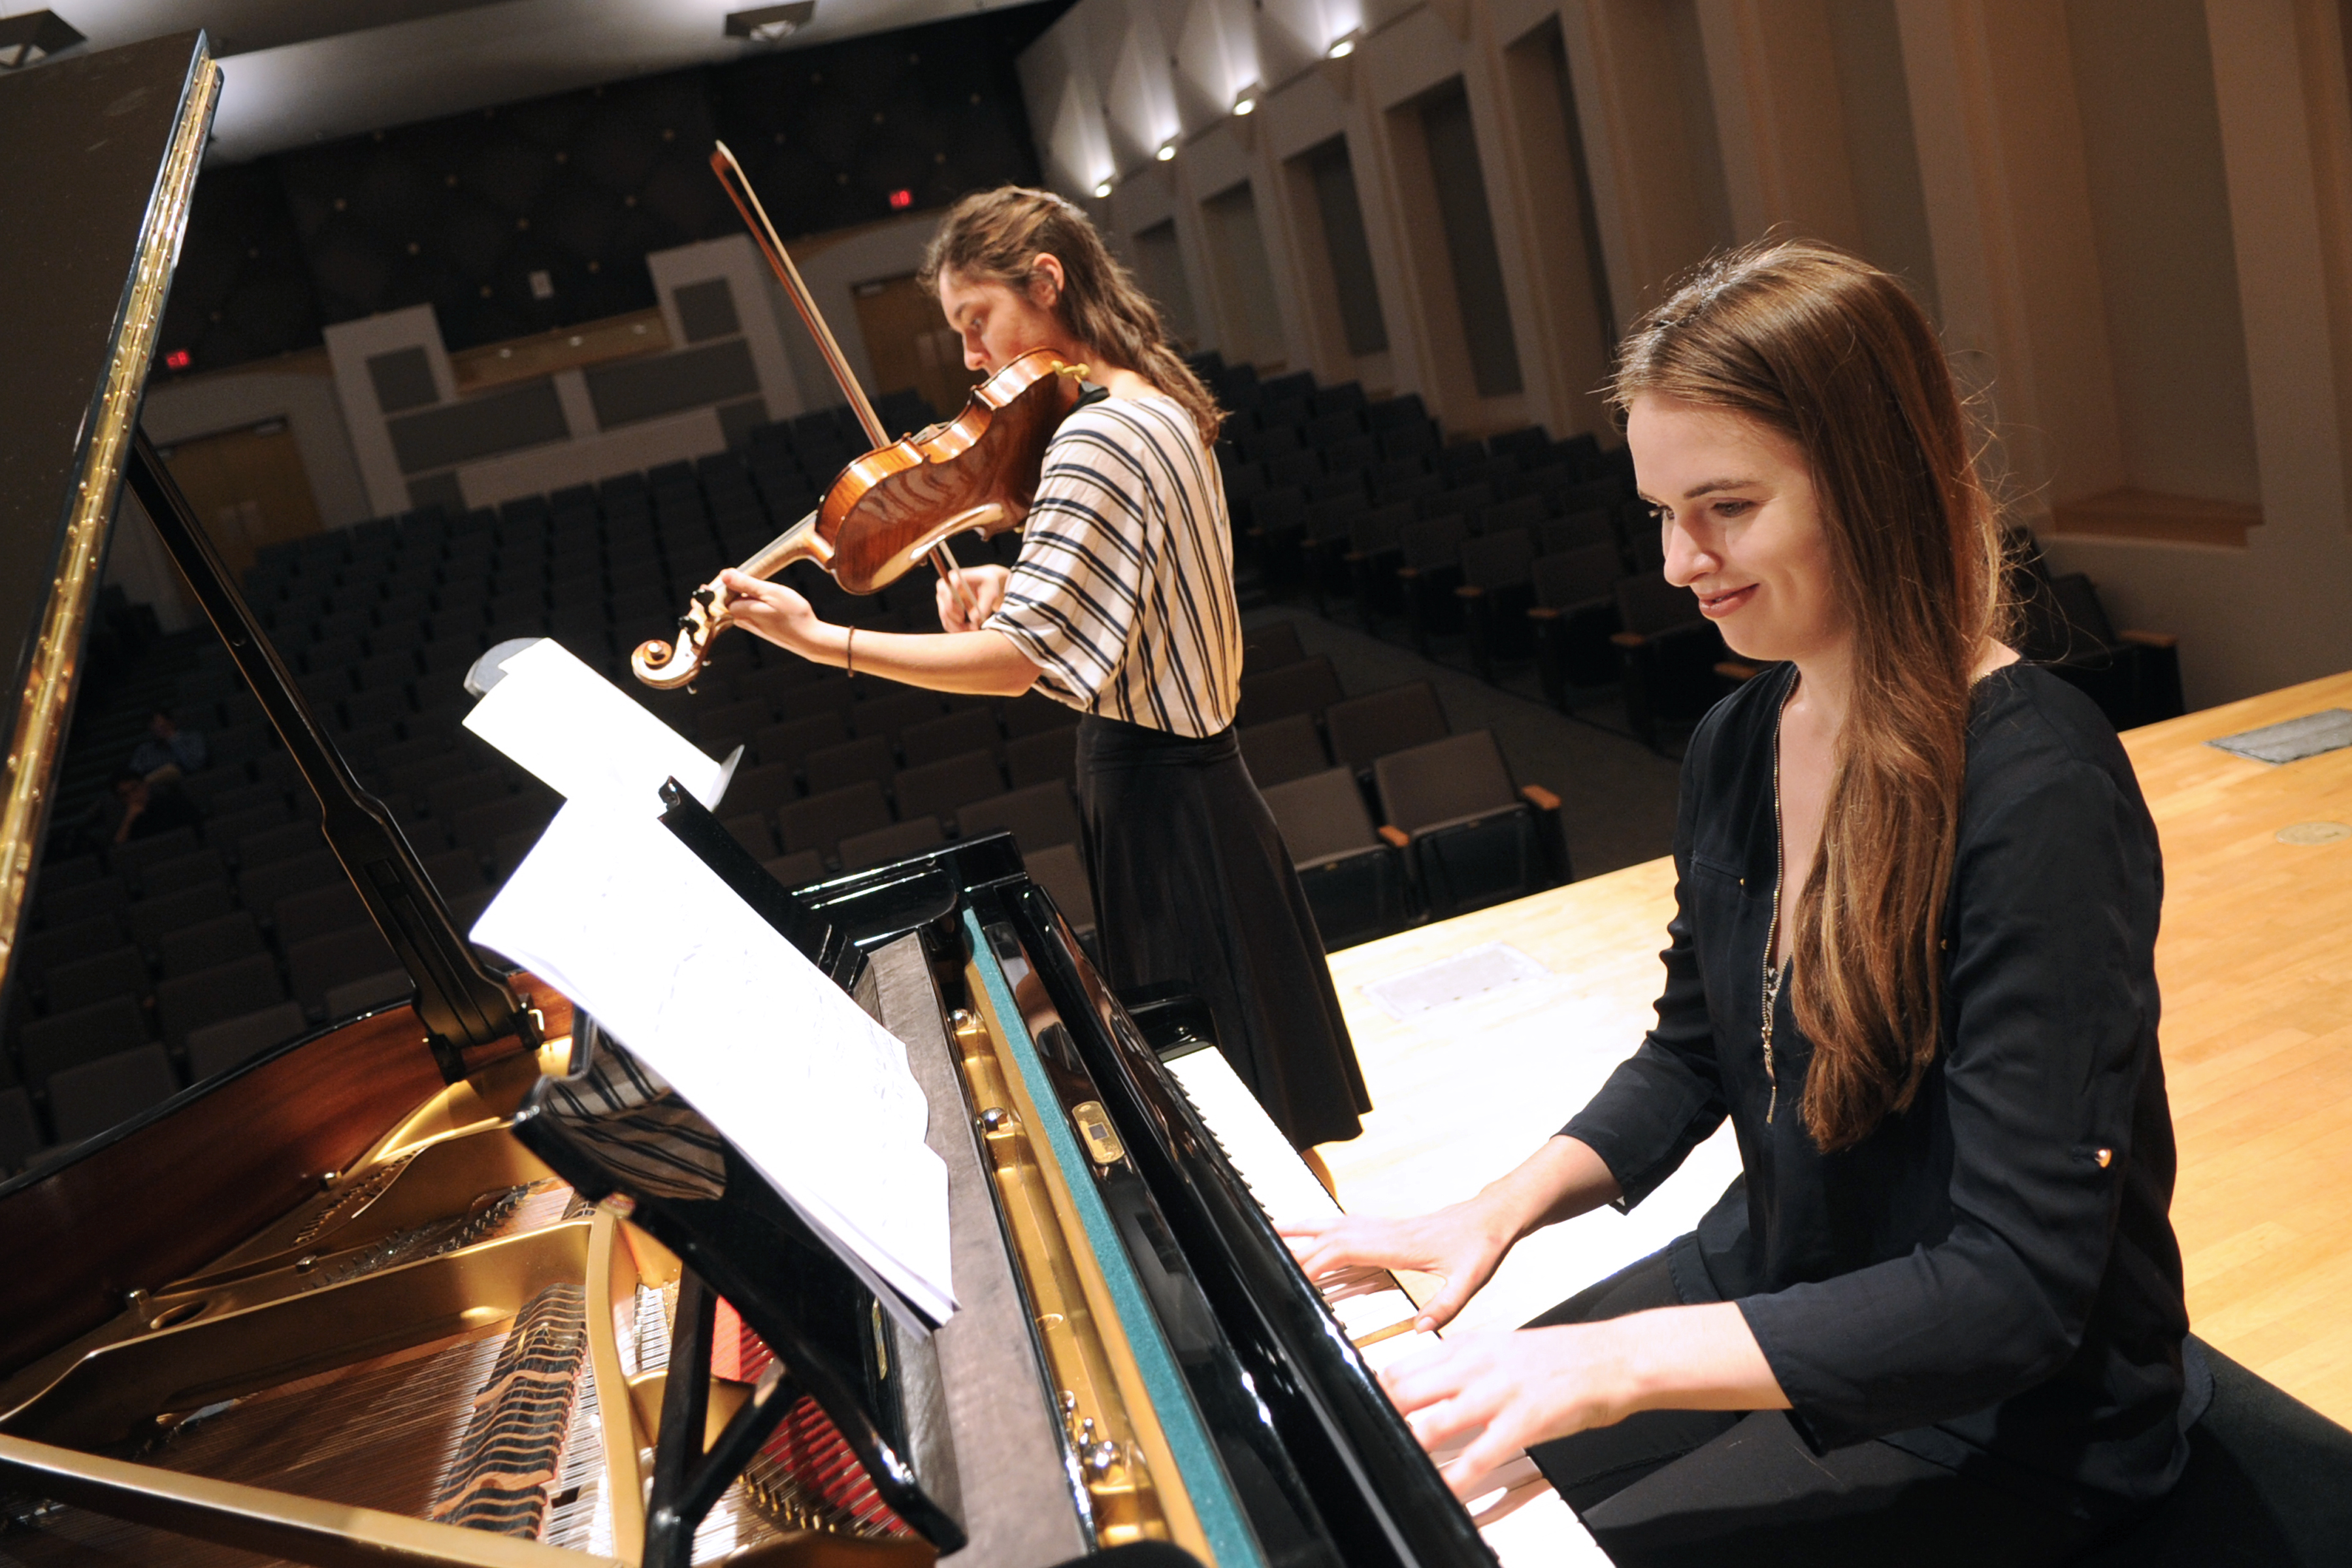 duo performs piano and violin onstage